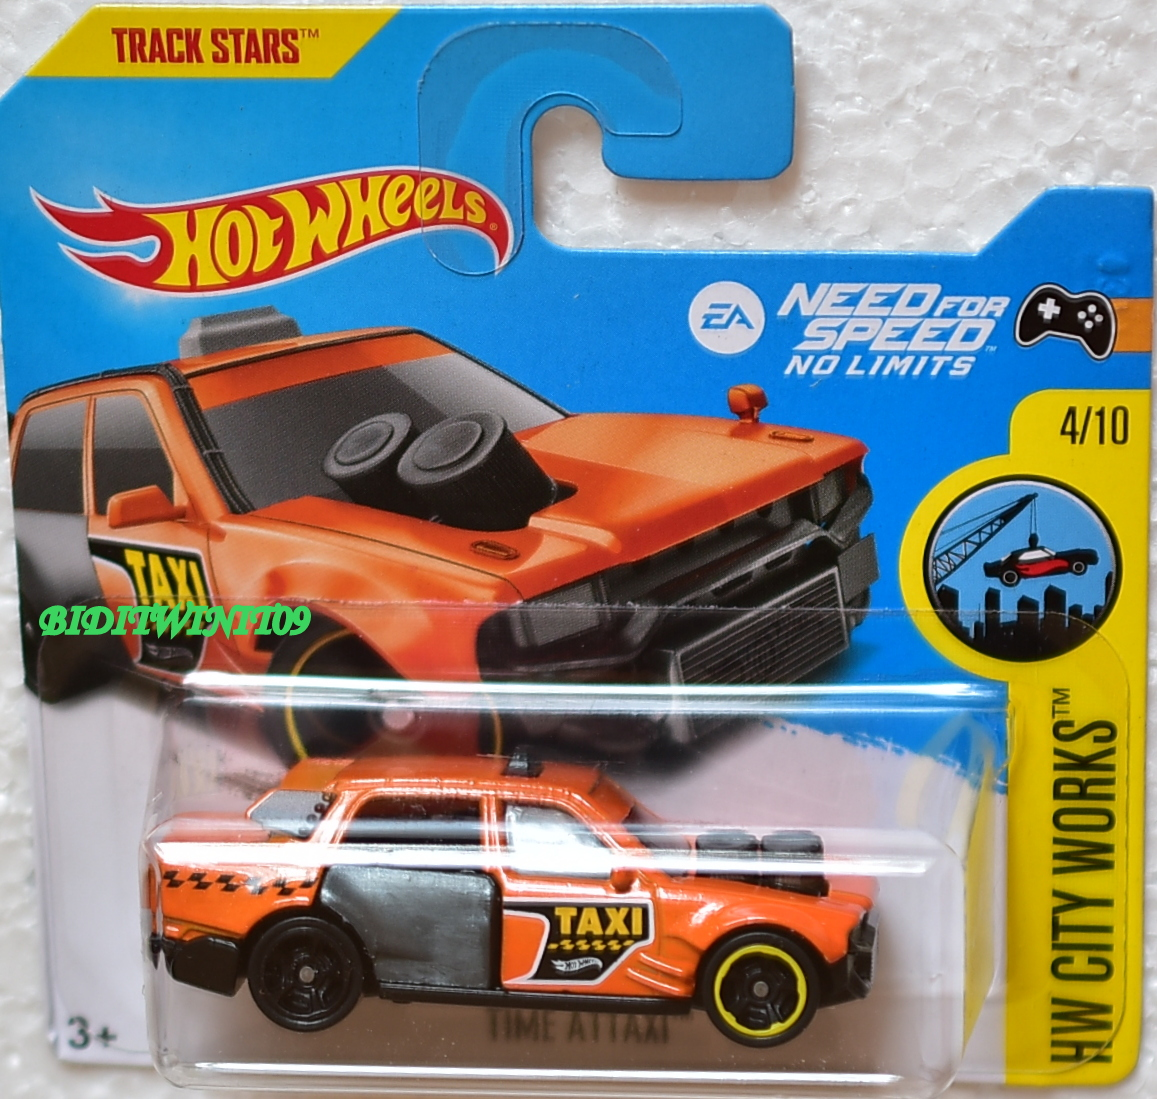 HOT WHEELS 2017 HW CITY WORKS TIME ATTAXI #4/10 ORANGE SHORT CARD